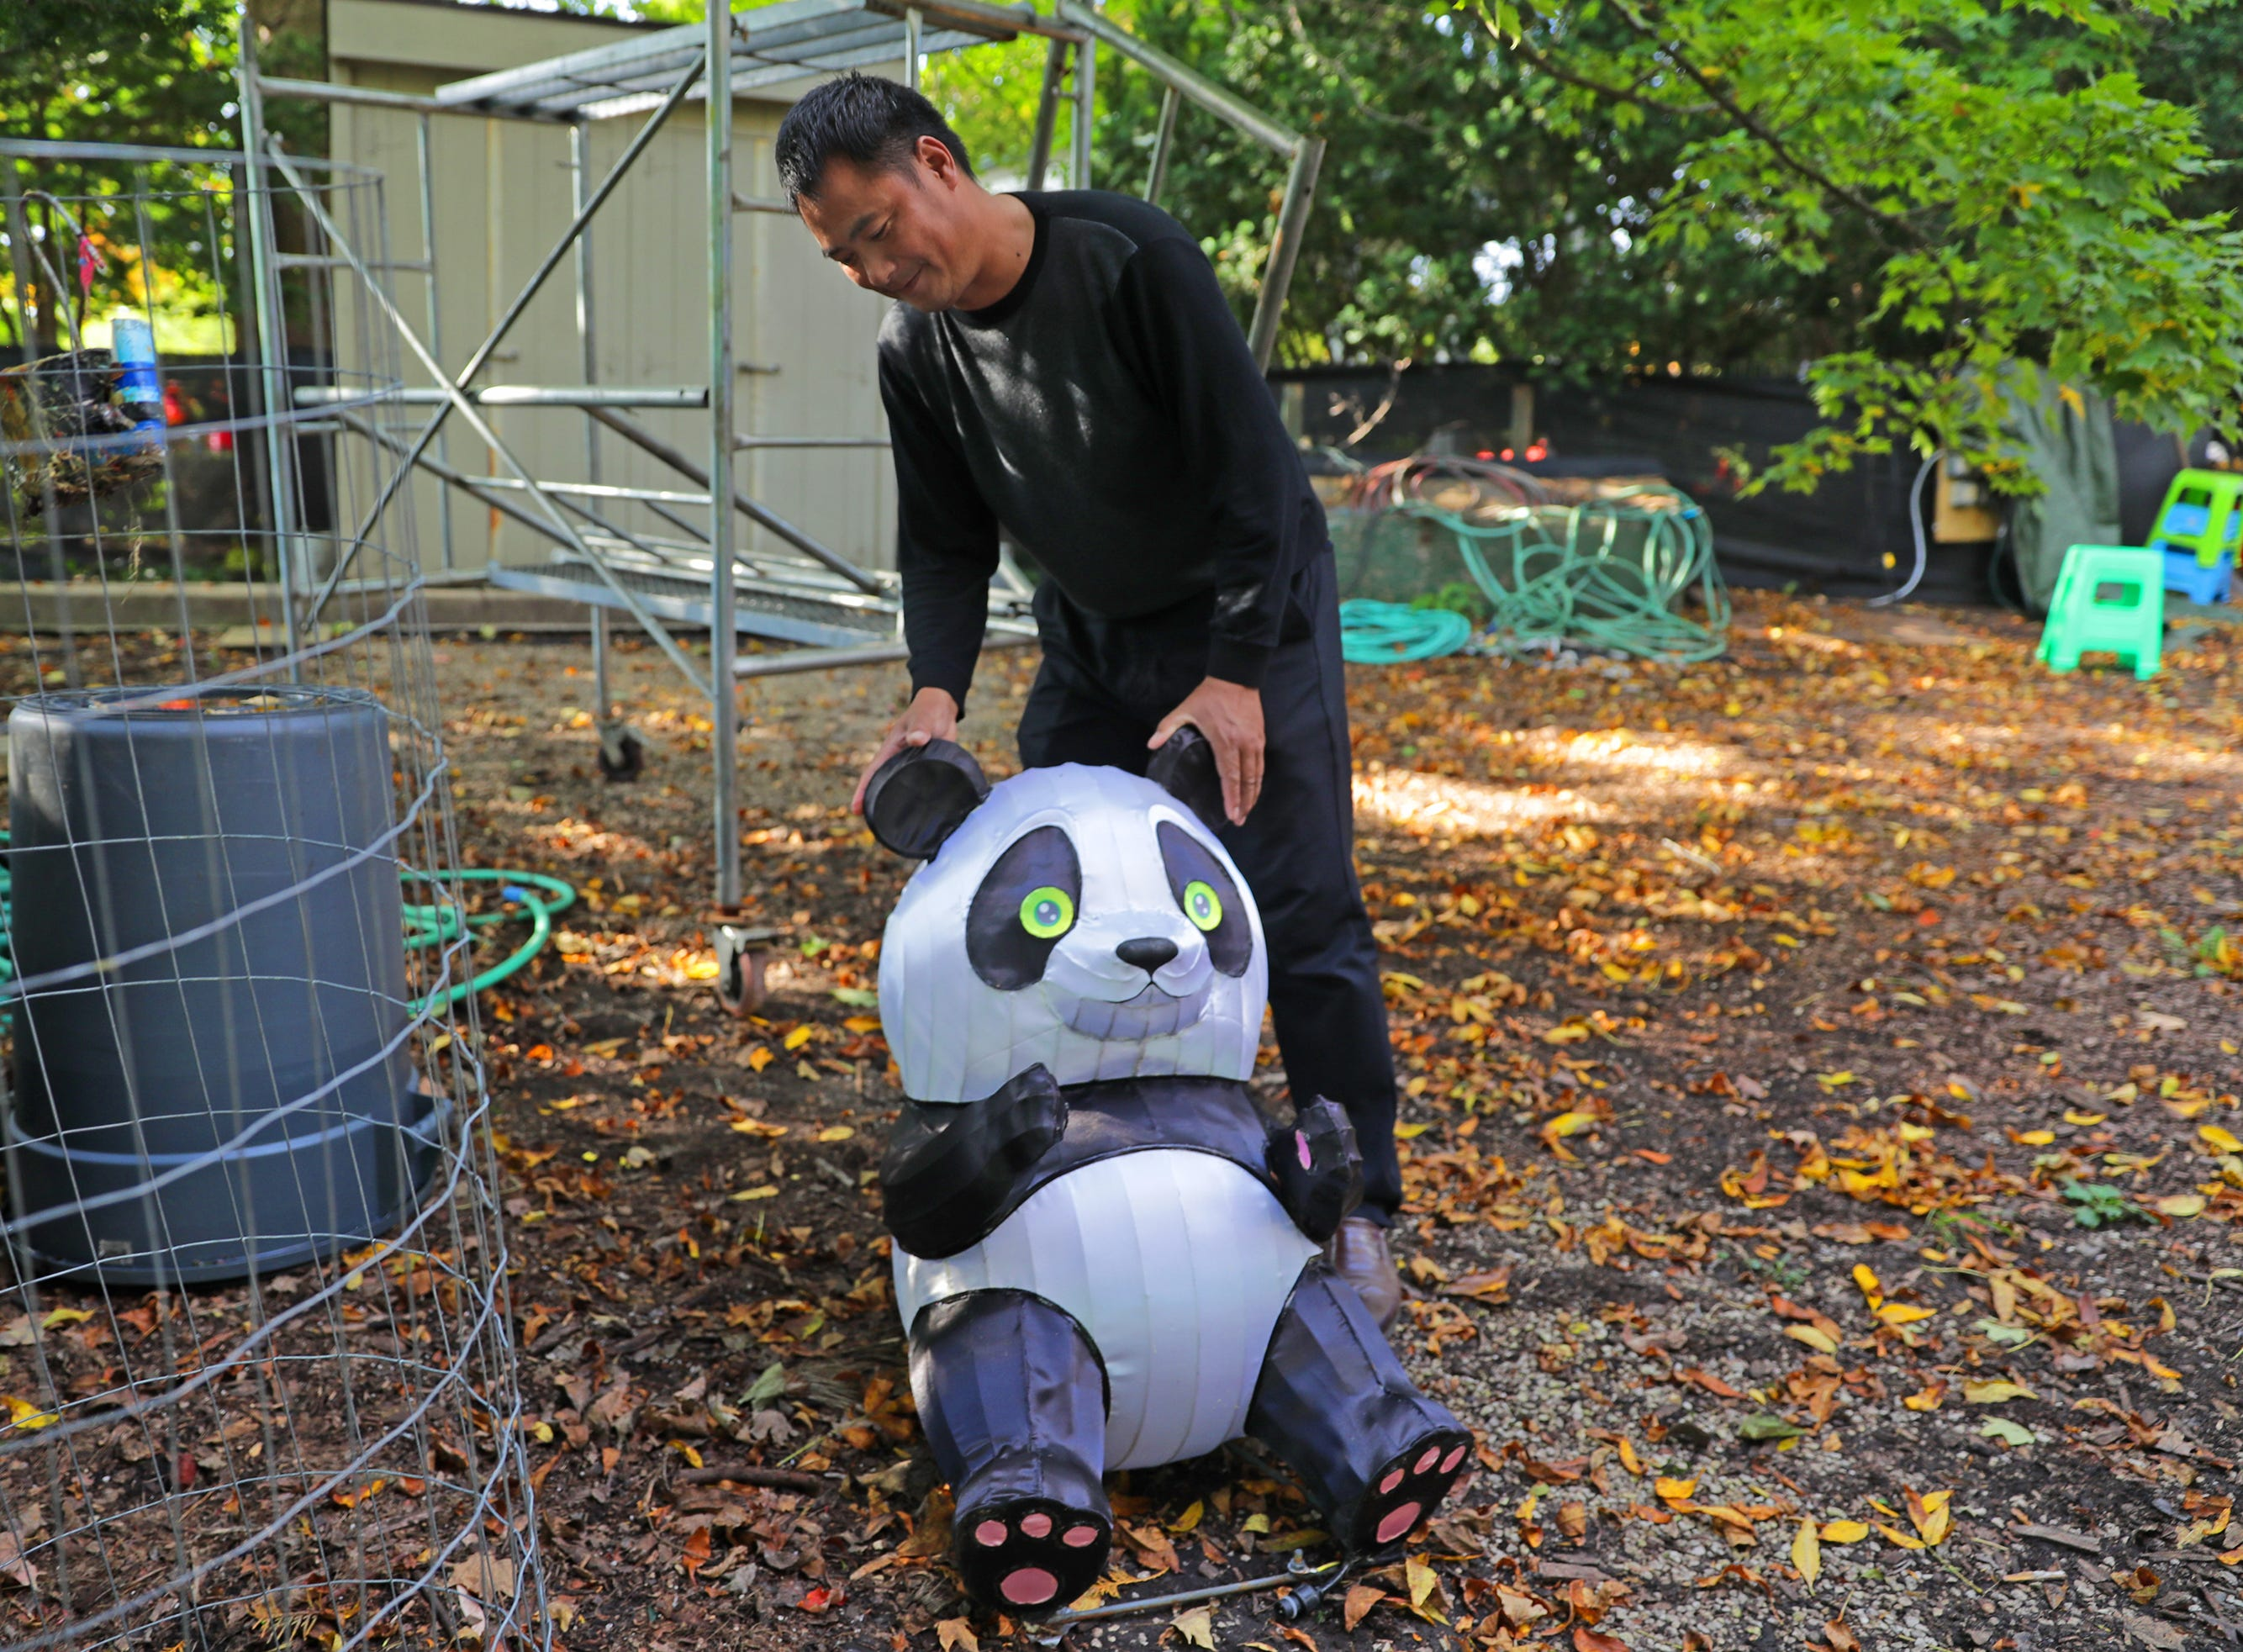 Liu Yufu, the China Lights supervisor of workers, looks over a panda display piece in need of repair.